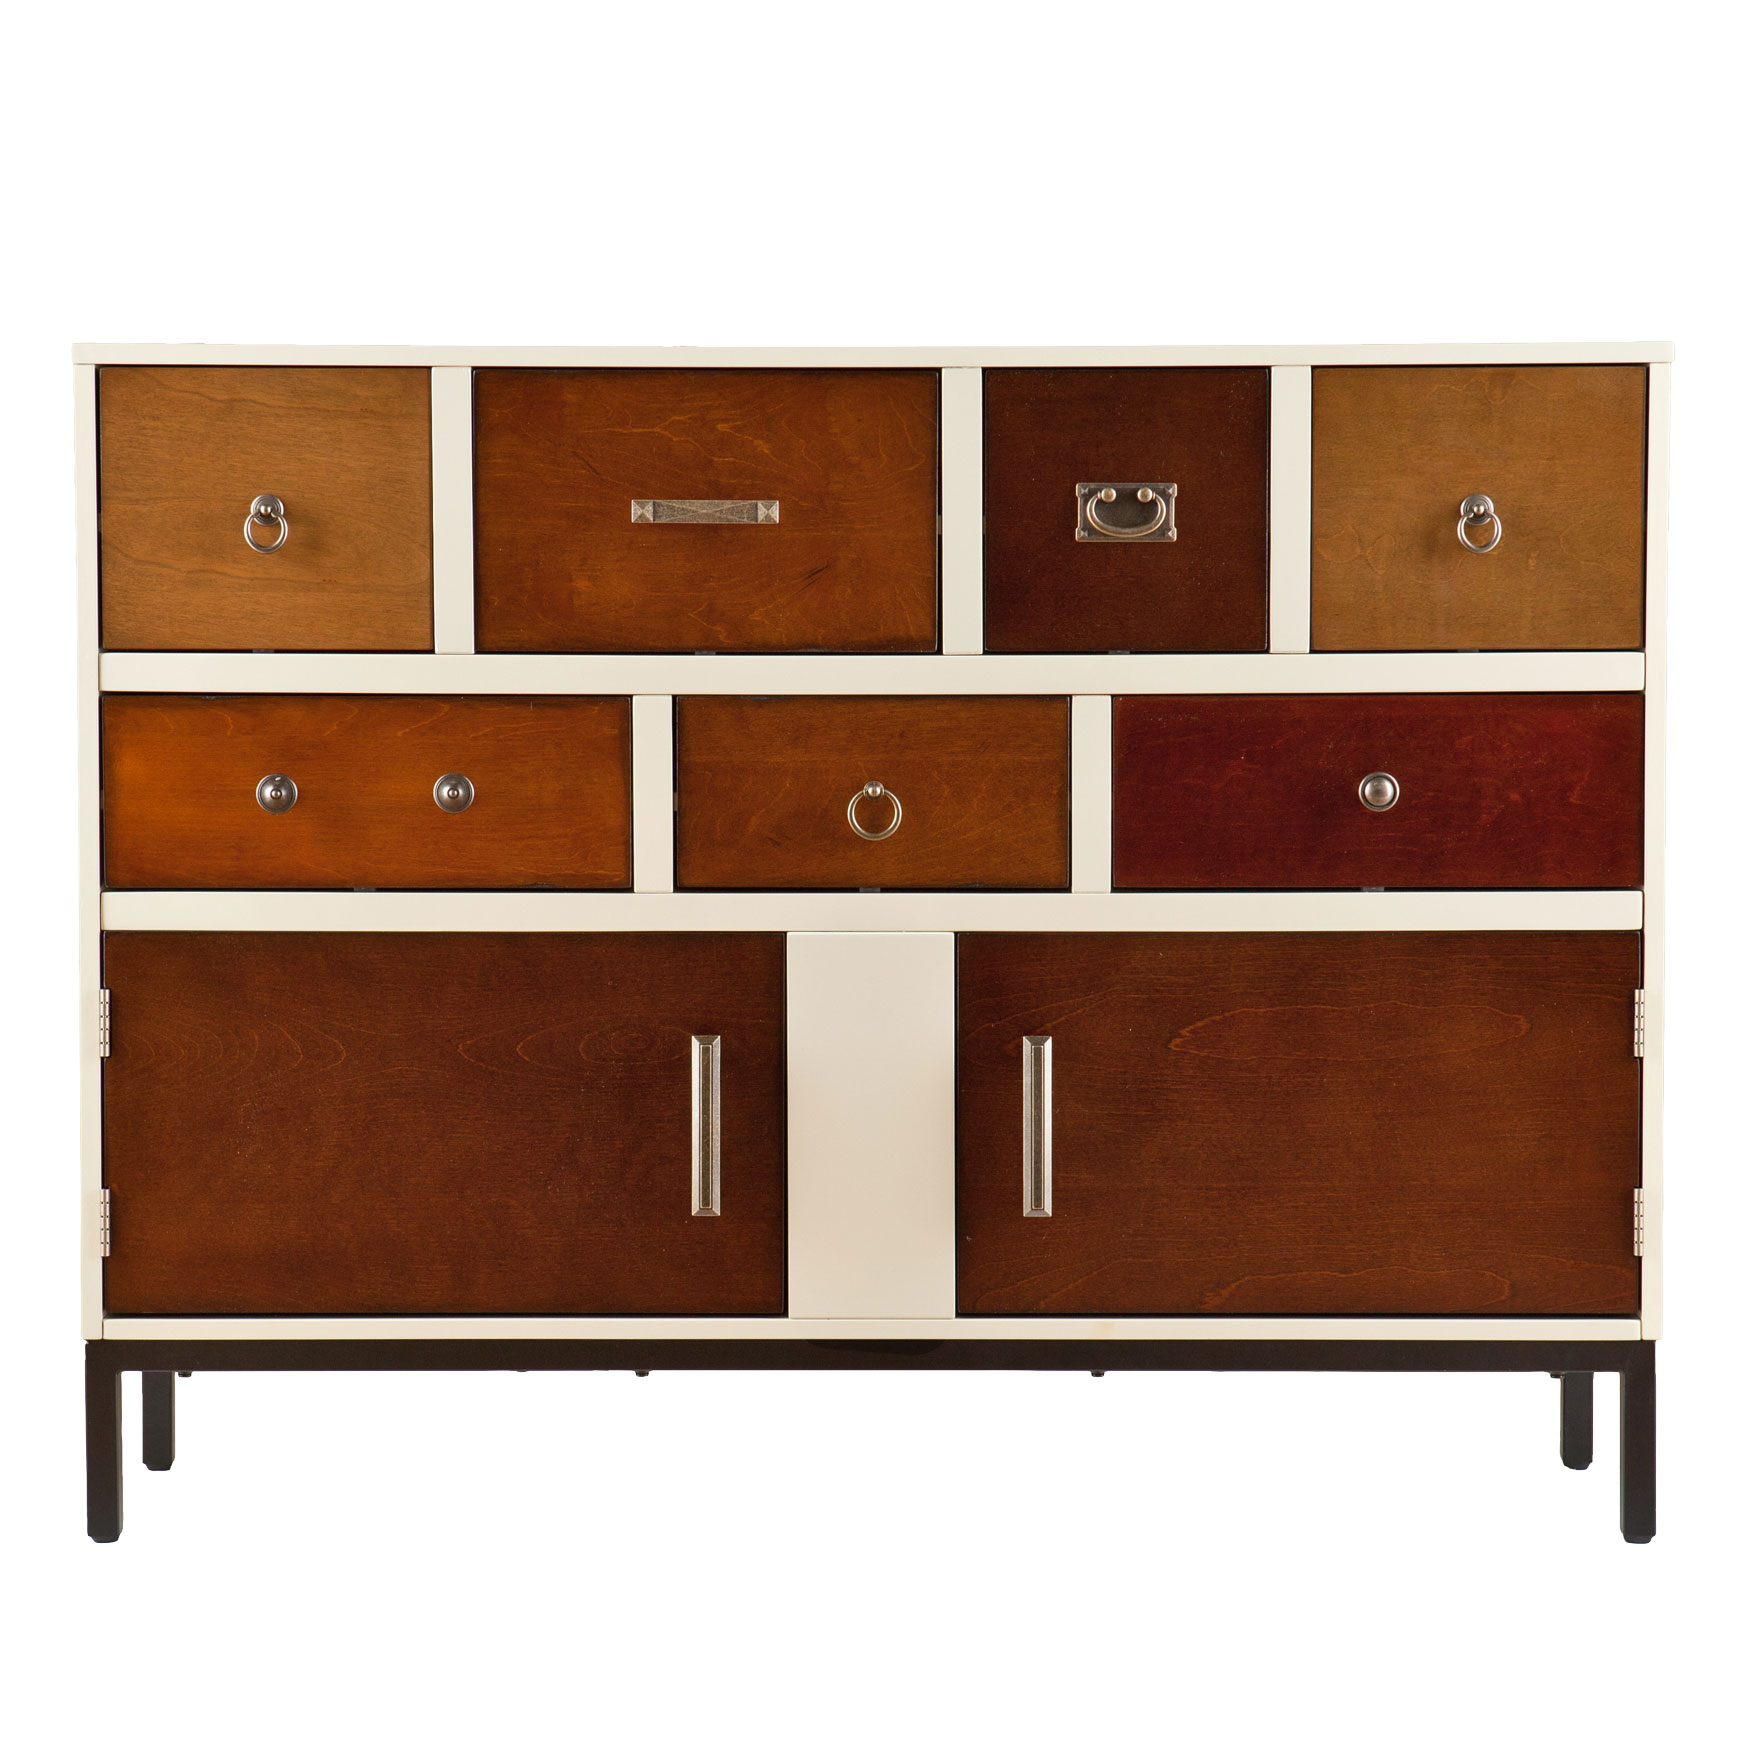 Contemporary Multi-Colored Wood Console Cabinet, VANILLA CREAM